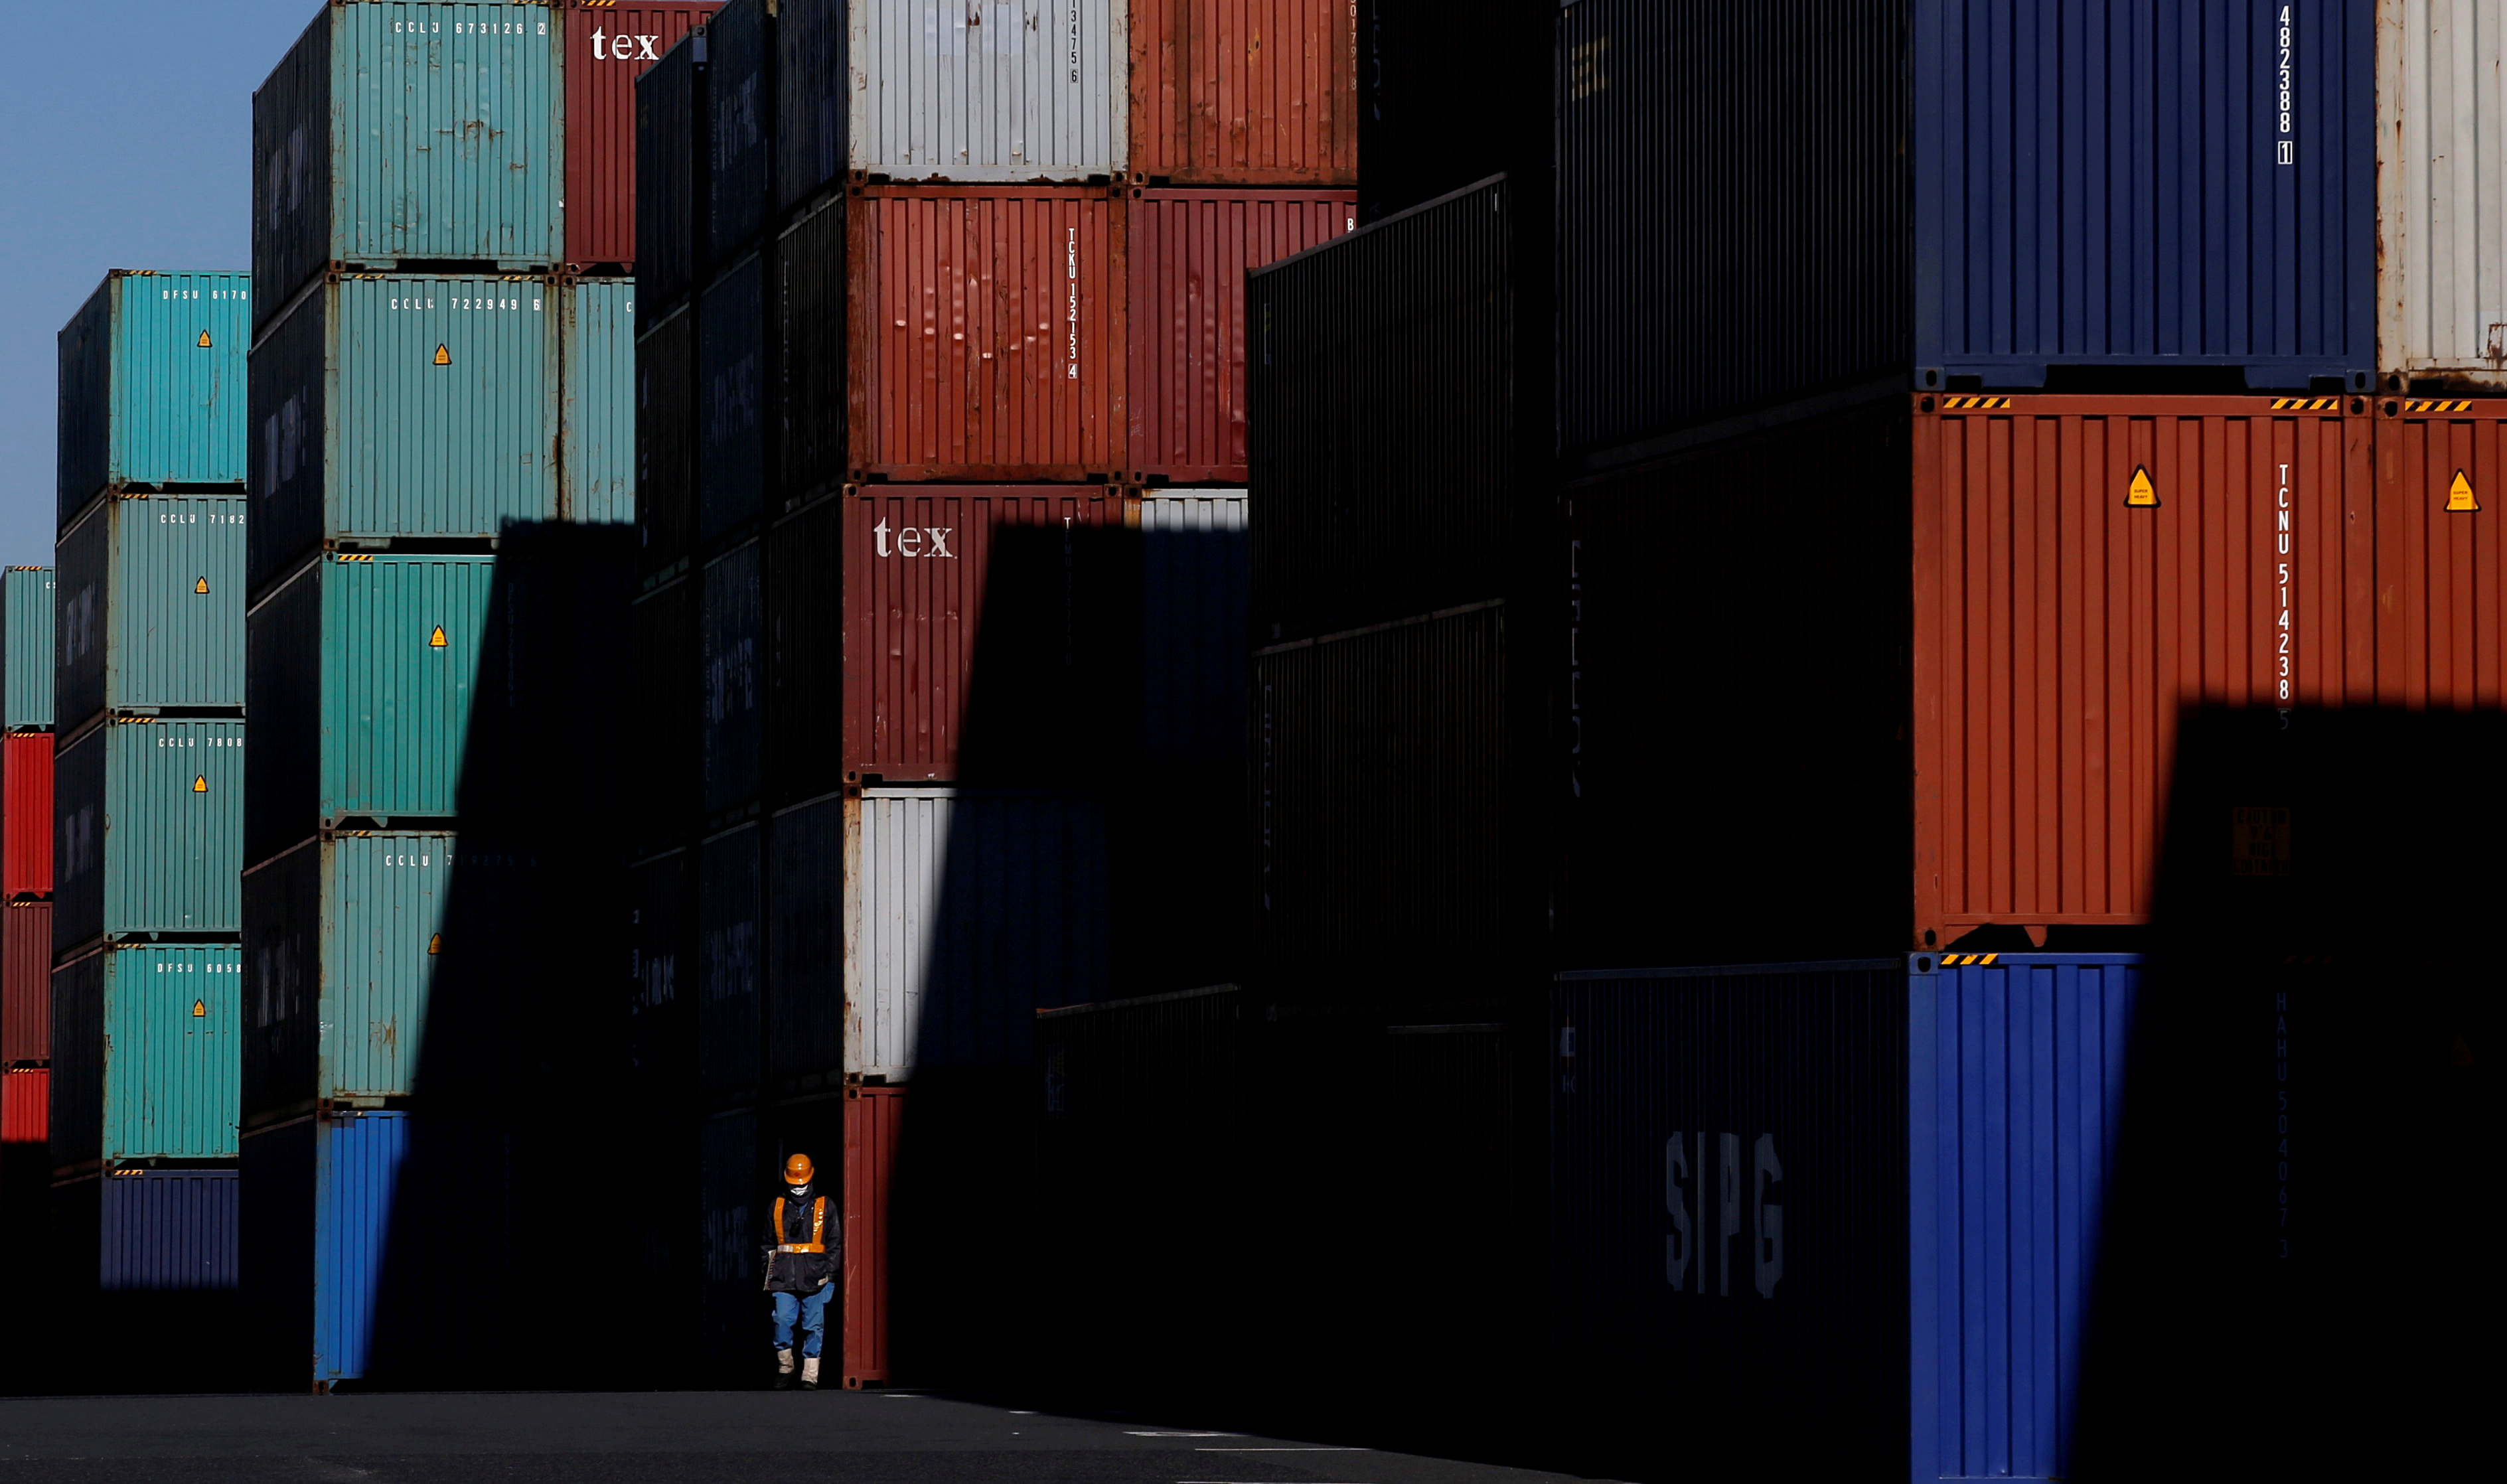 Japan exports slide for 6th month as trade troubles knock demand, weaken outlook